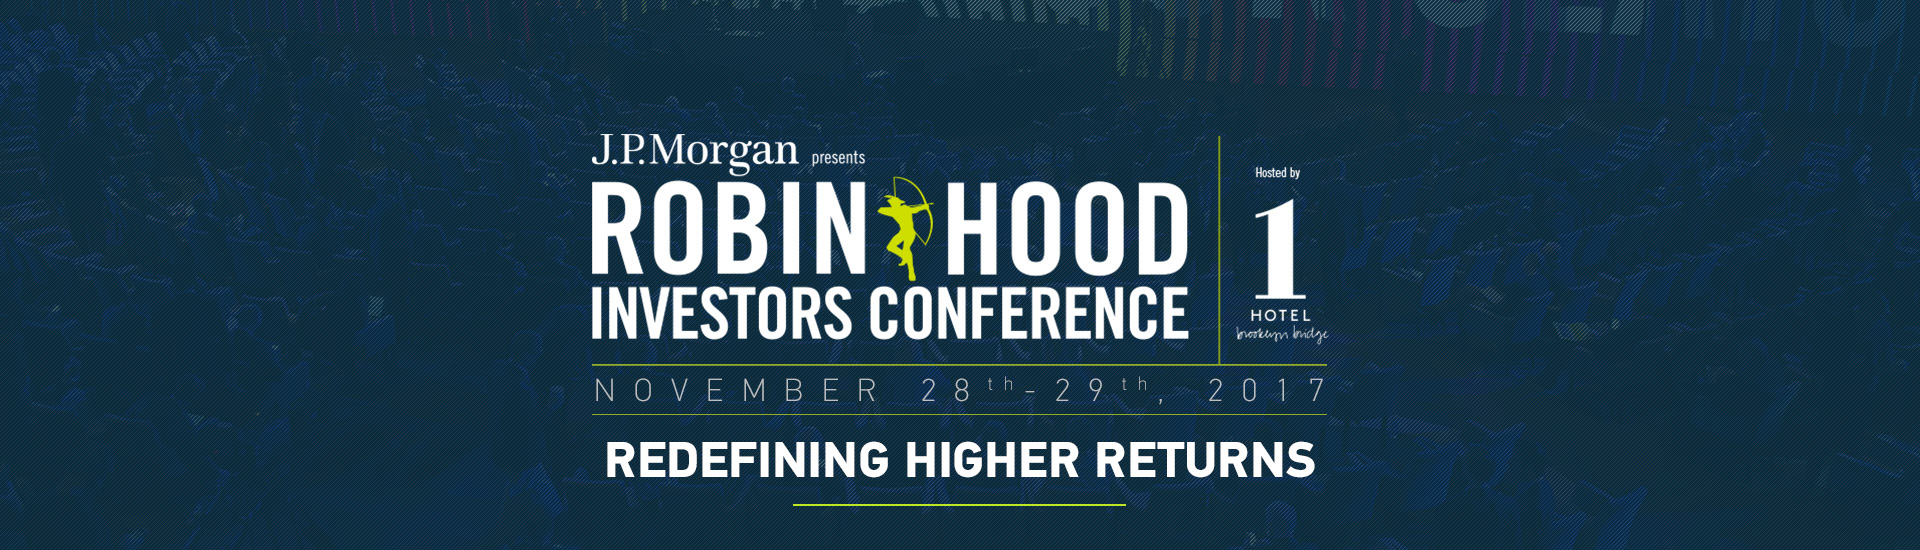 DEMO EVENT - Robin Hood Investors Conference 2017